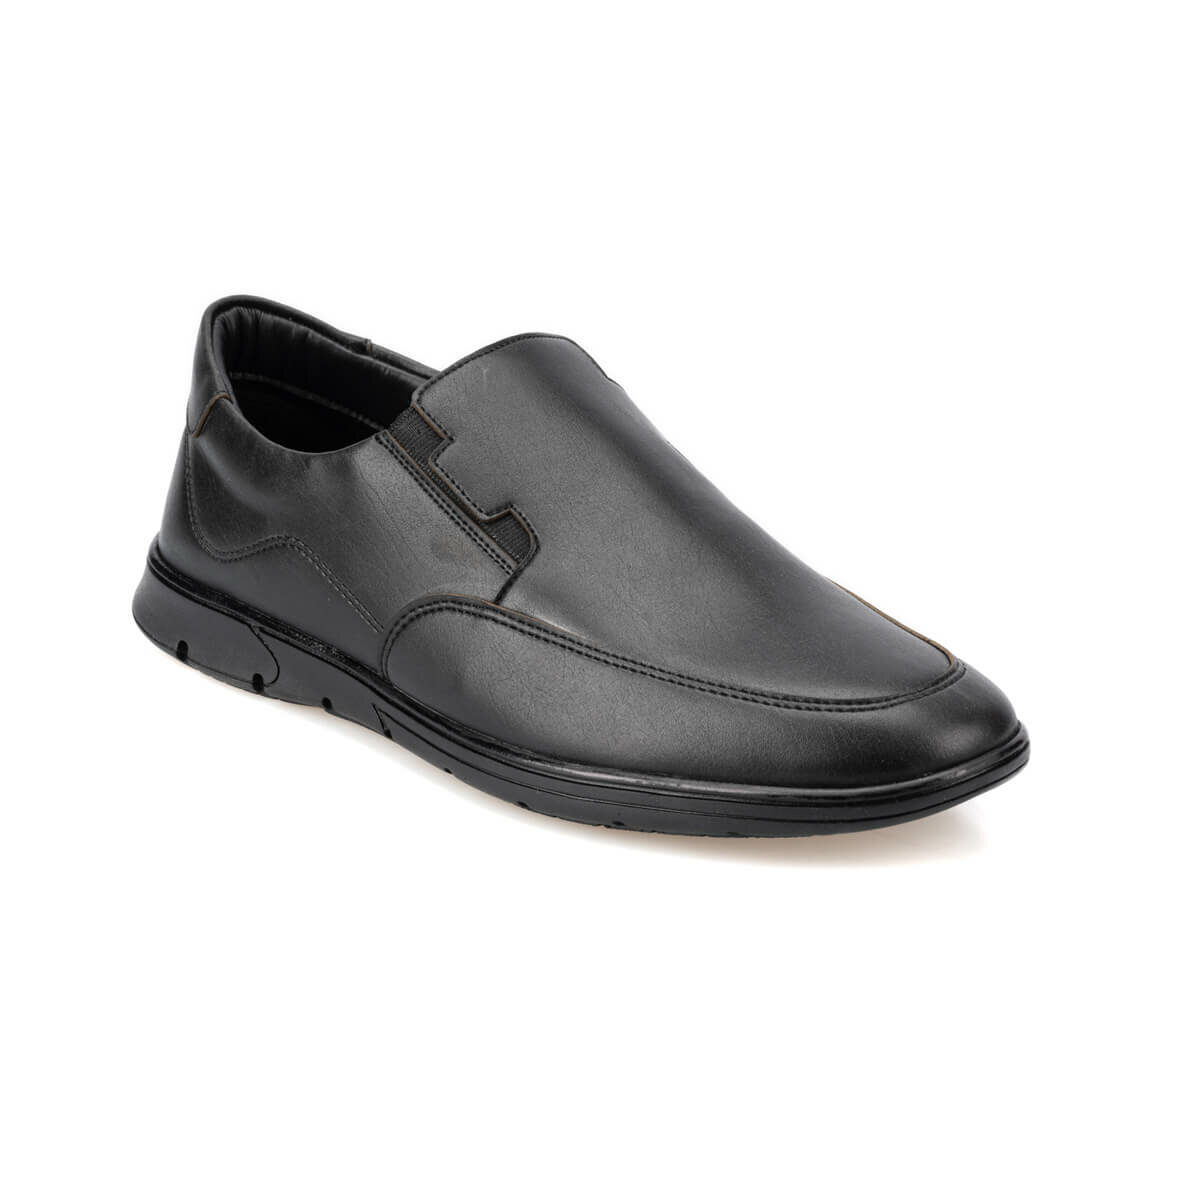 FLO 92.150950.M Black Male Shoes Polaris